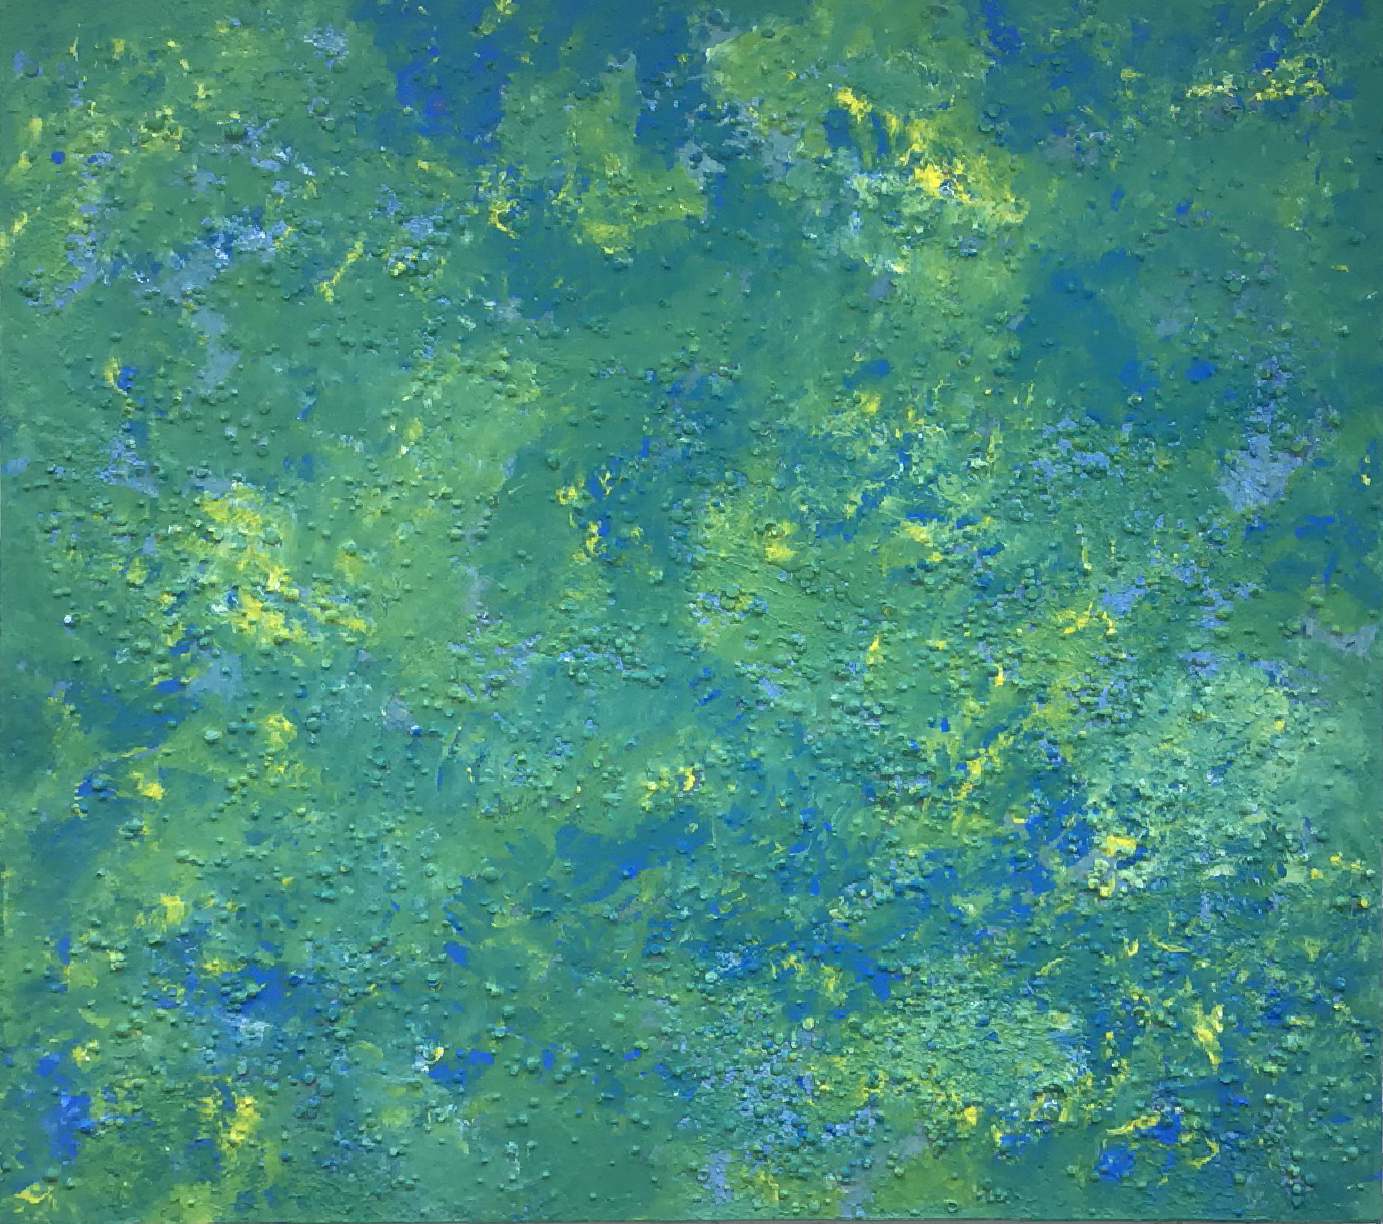 Abstract #12 (Yellow, Blue, Green & Aqua